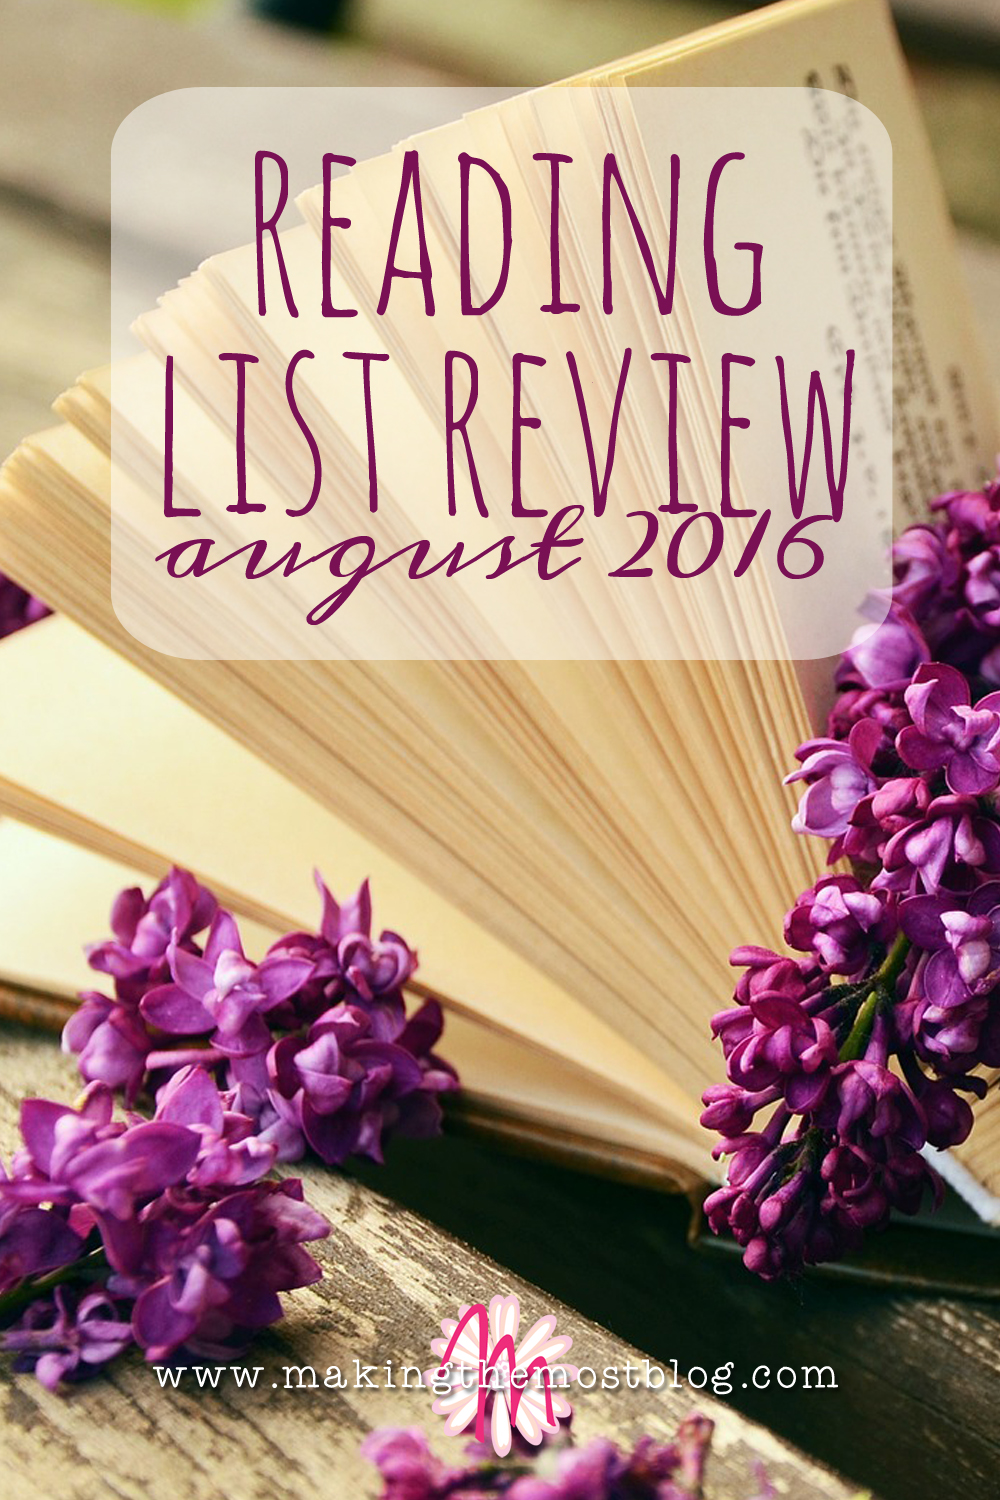 Reading List Review: August 2016